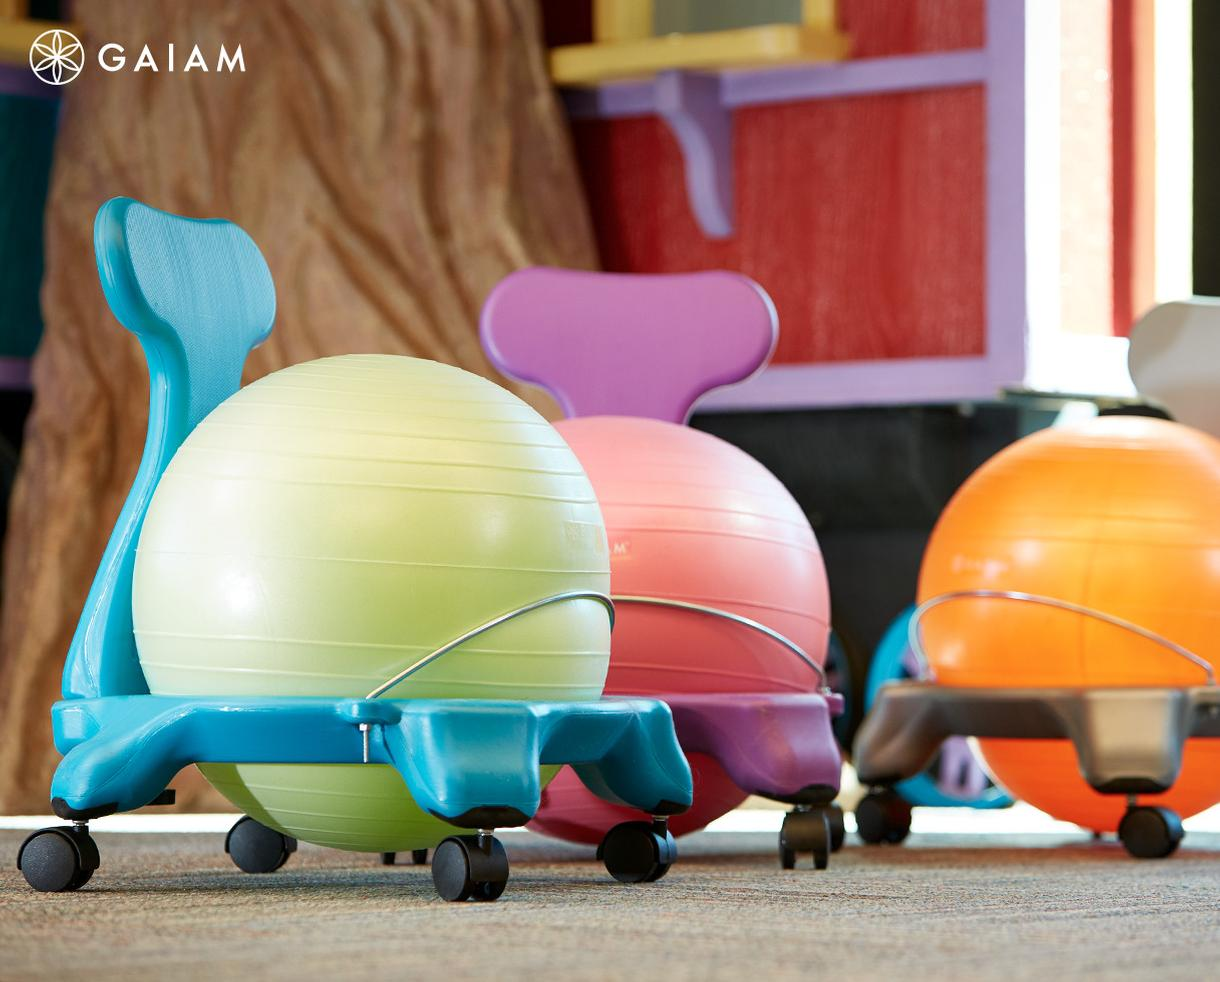 Gaiam Yoga Ball Chair Deal 20 Off Gaiam Yoga Ball Chairs And Select Active